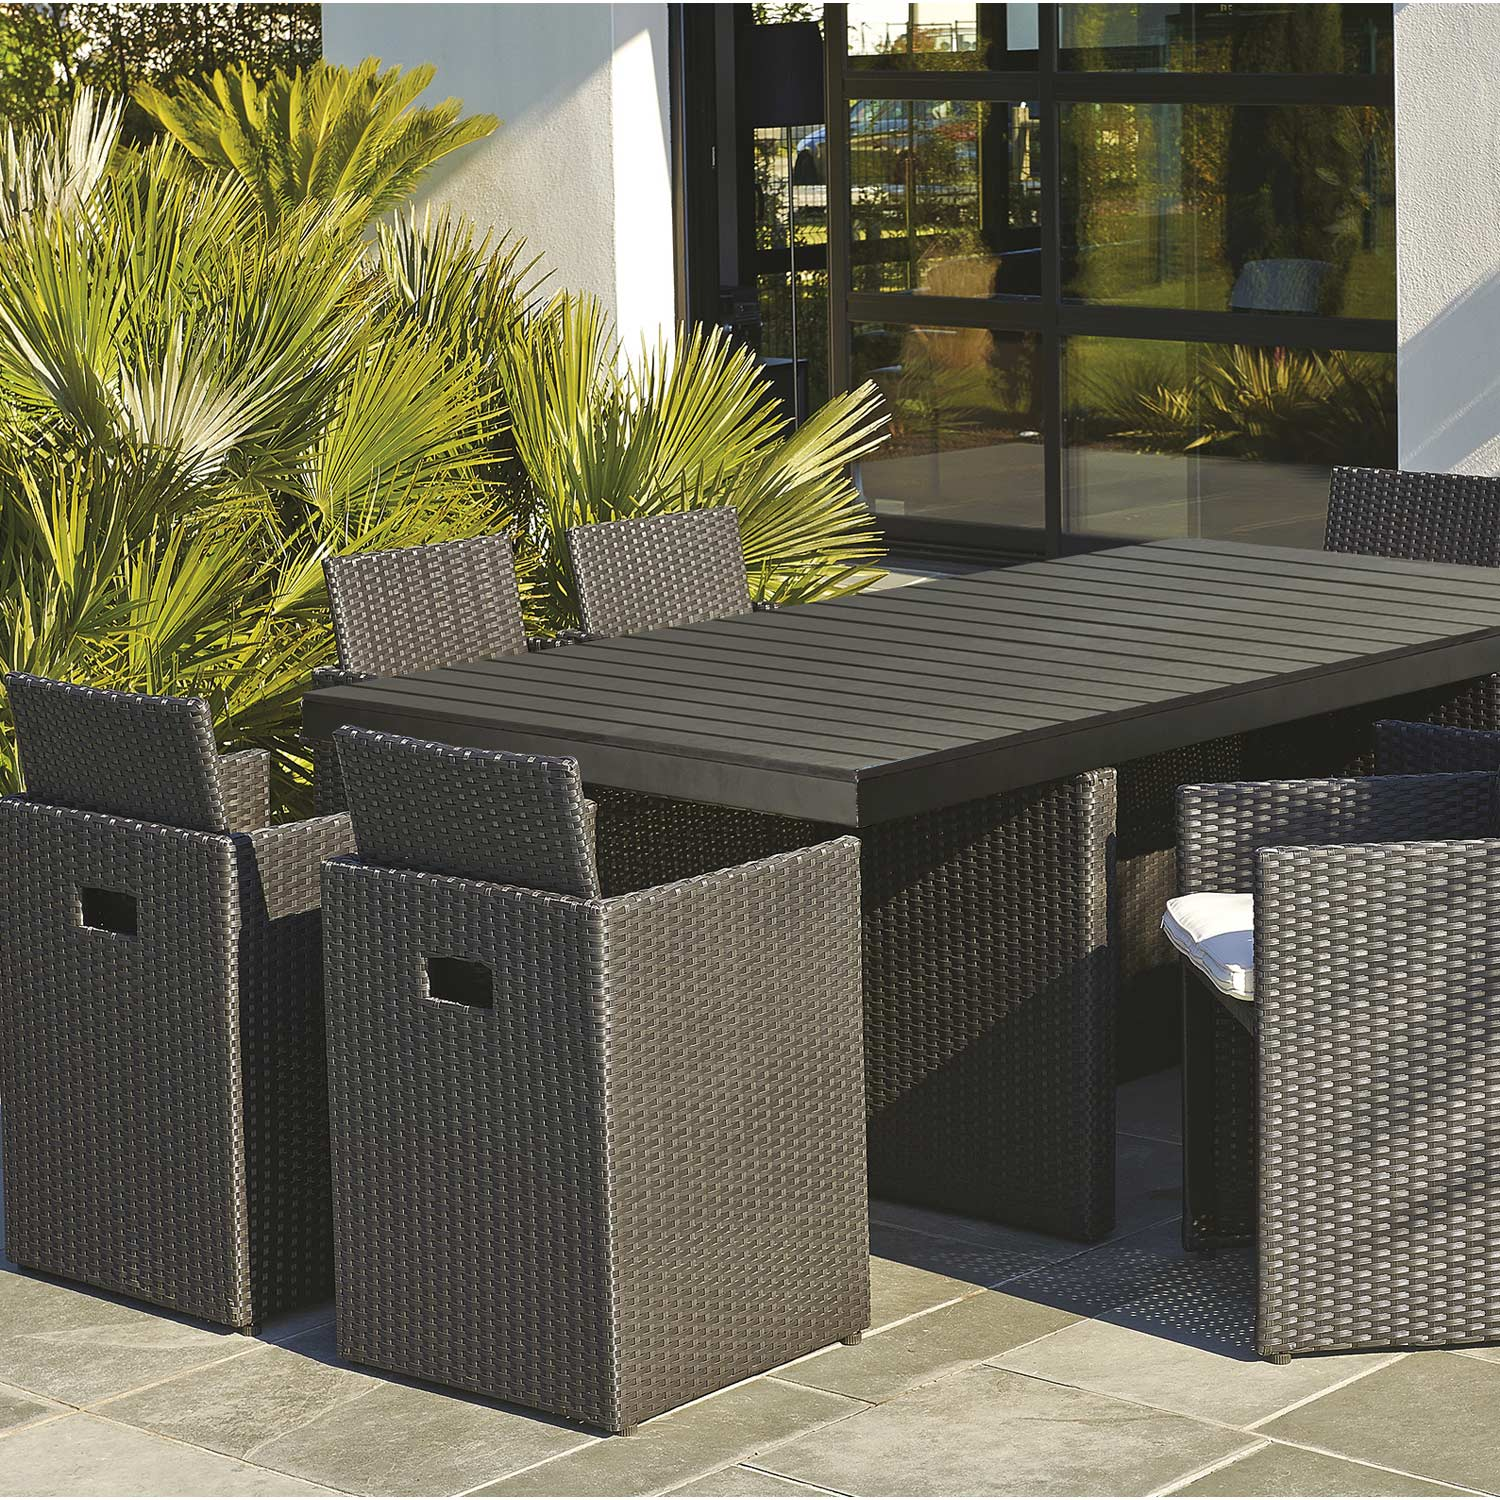 Salon de jardin encastrable r sine tress e noir 1 table 8 fauteuils leroy merlin - Table salon de jardin resine tressee ...